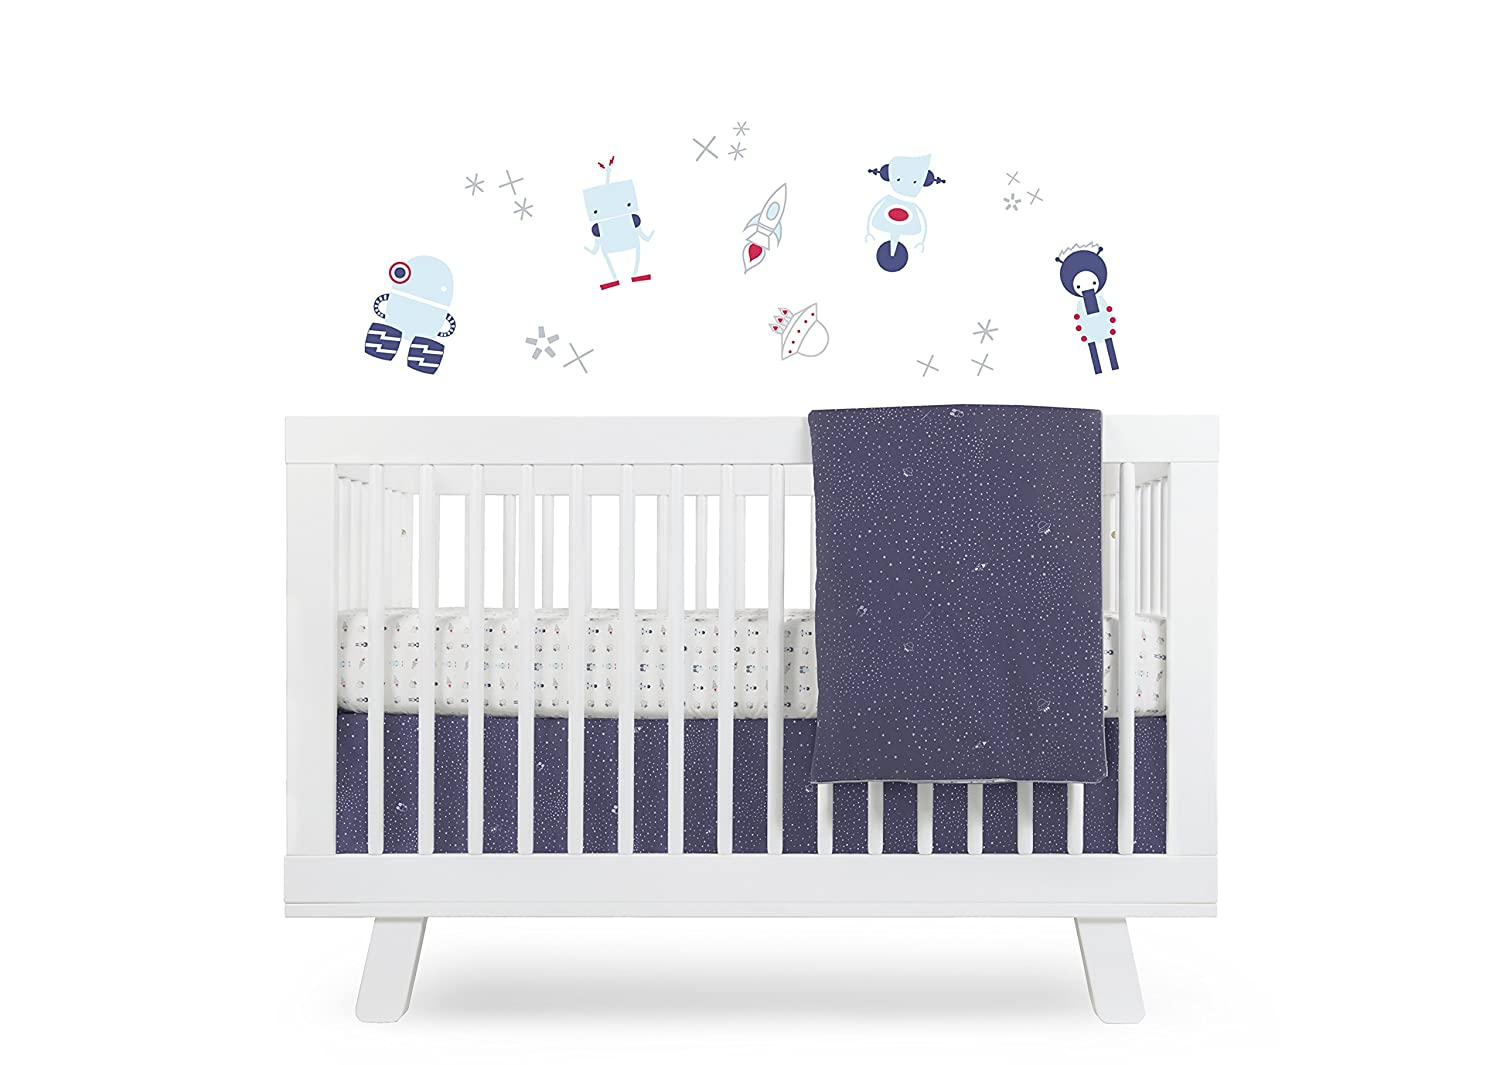 Babyletto 5-Piece Nursery Crib Bedding Set, Fitted Crib Sheet, Crib Skirt, Play Blanket, Contour Changing Pad Cover & Wall Decals, Galaxy